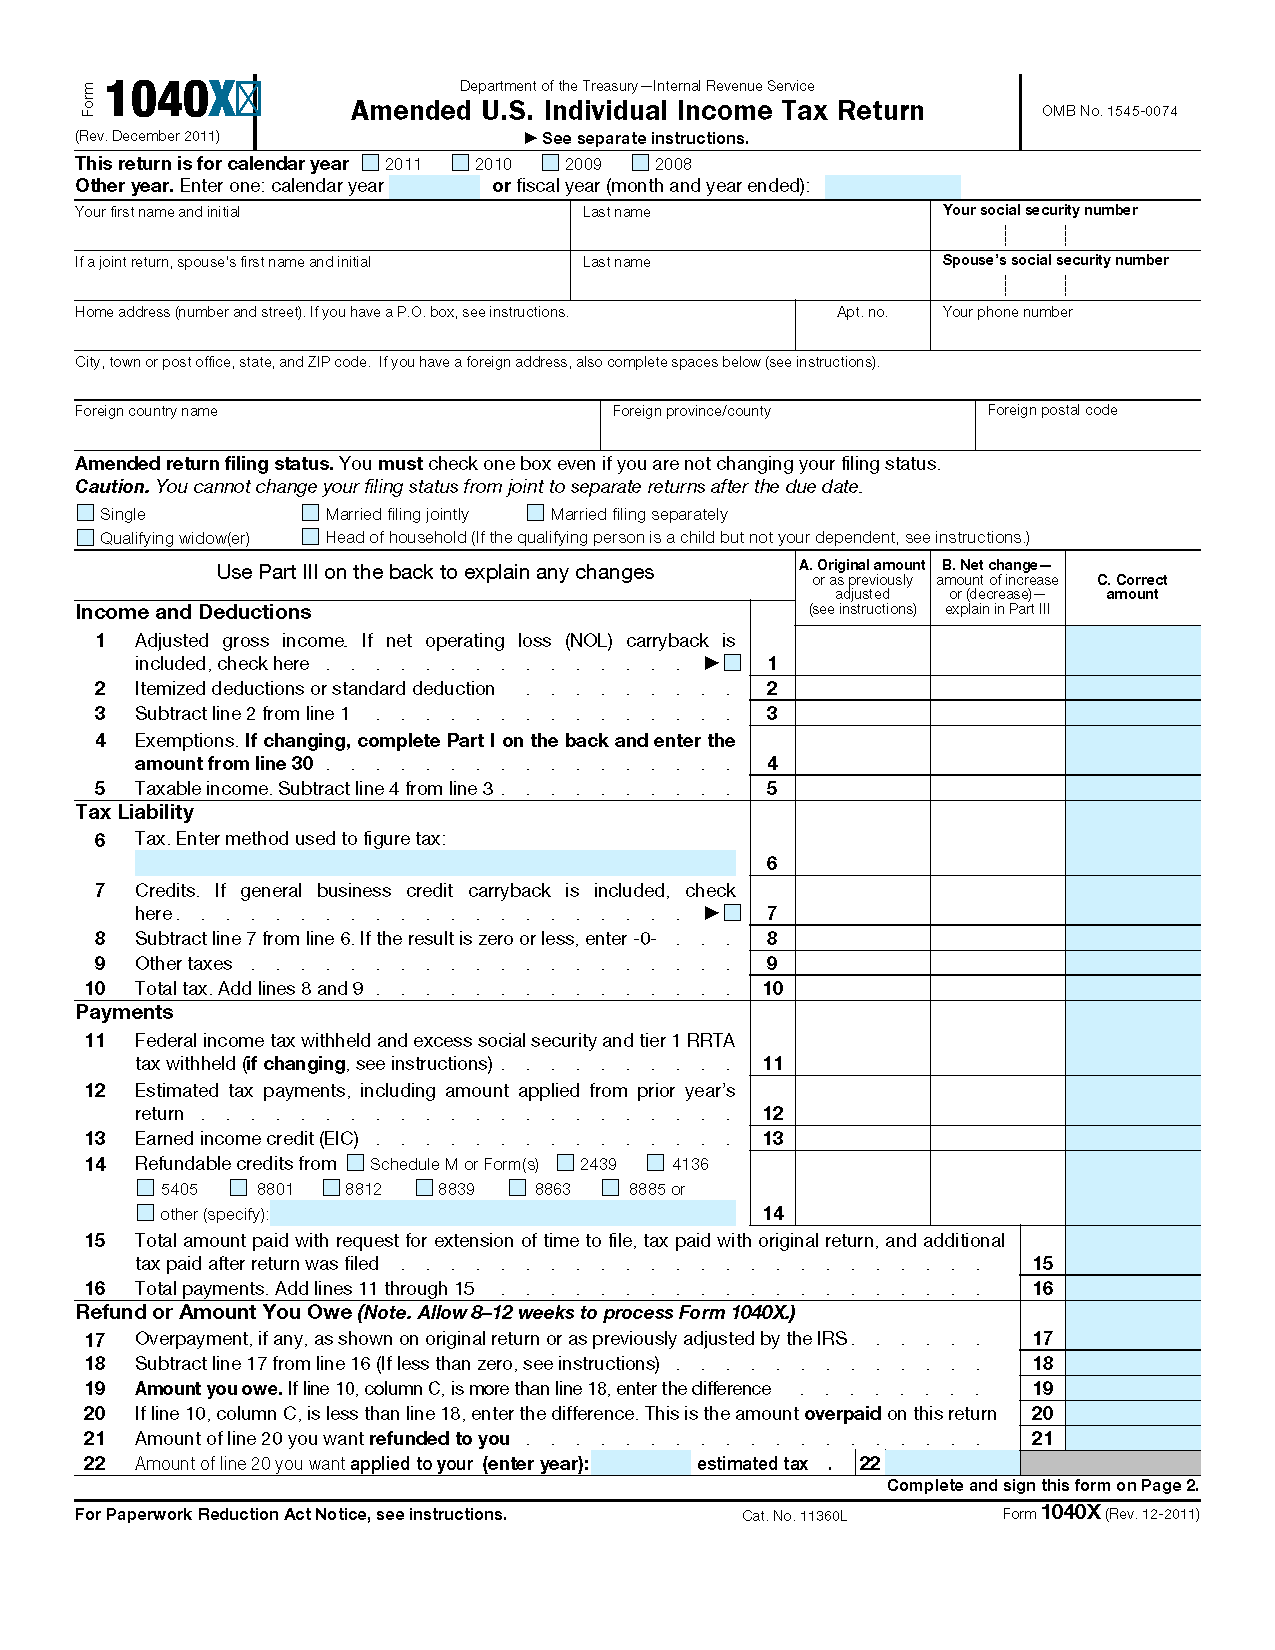 2016 1040ez printable tax forms bing images for 1040ez 2012 tax table